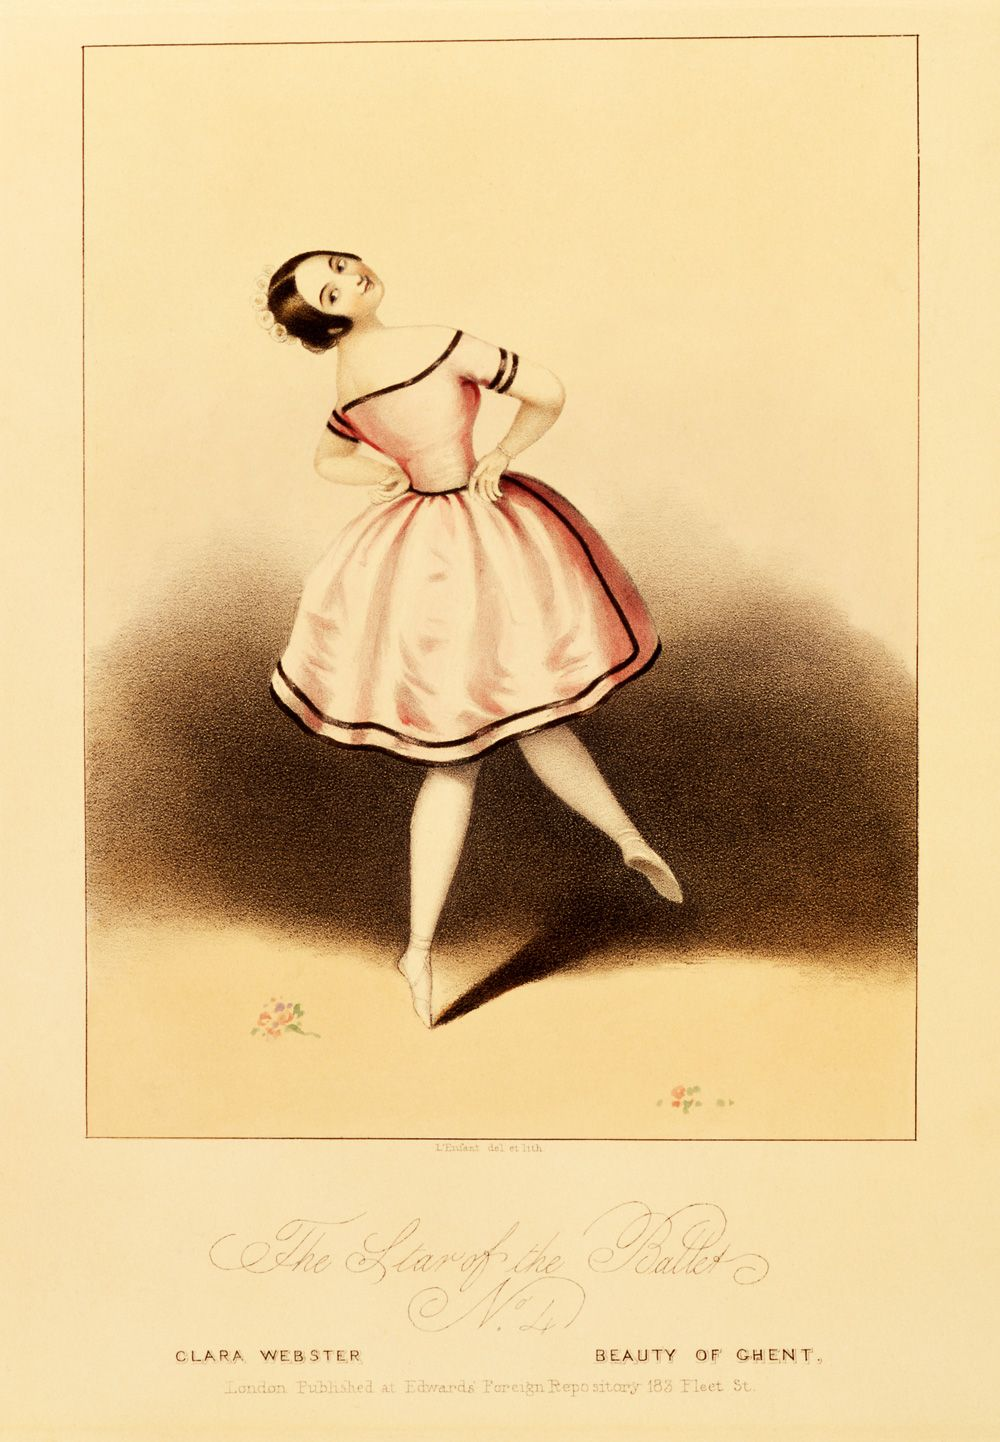 romantic era ballet was influenced by all the aspects of